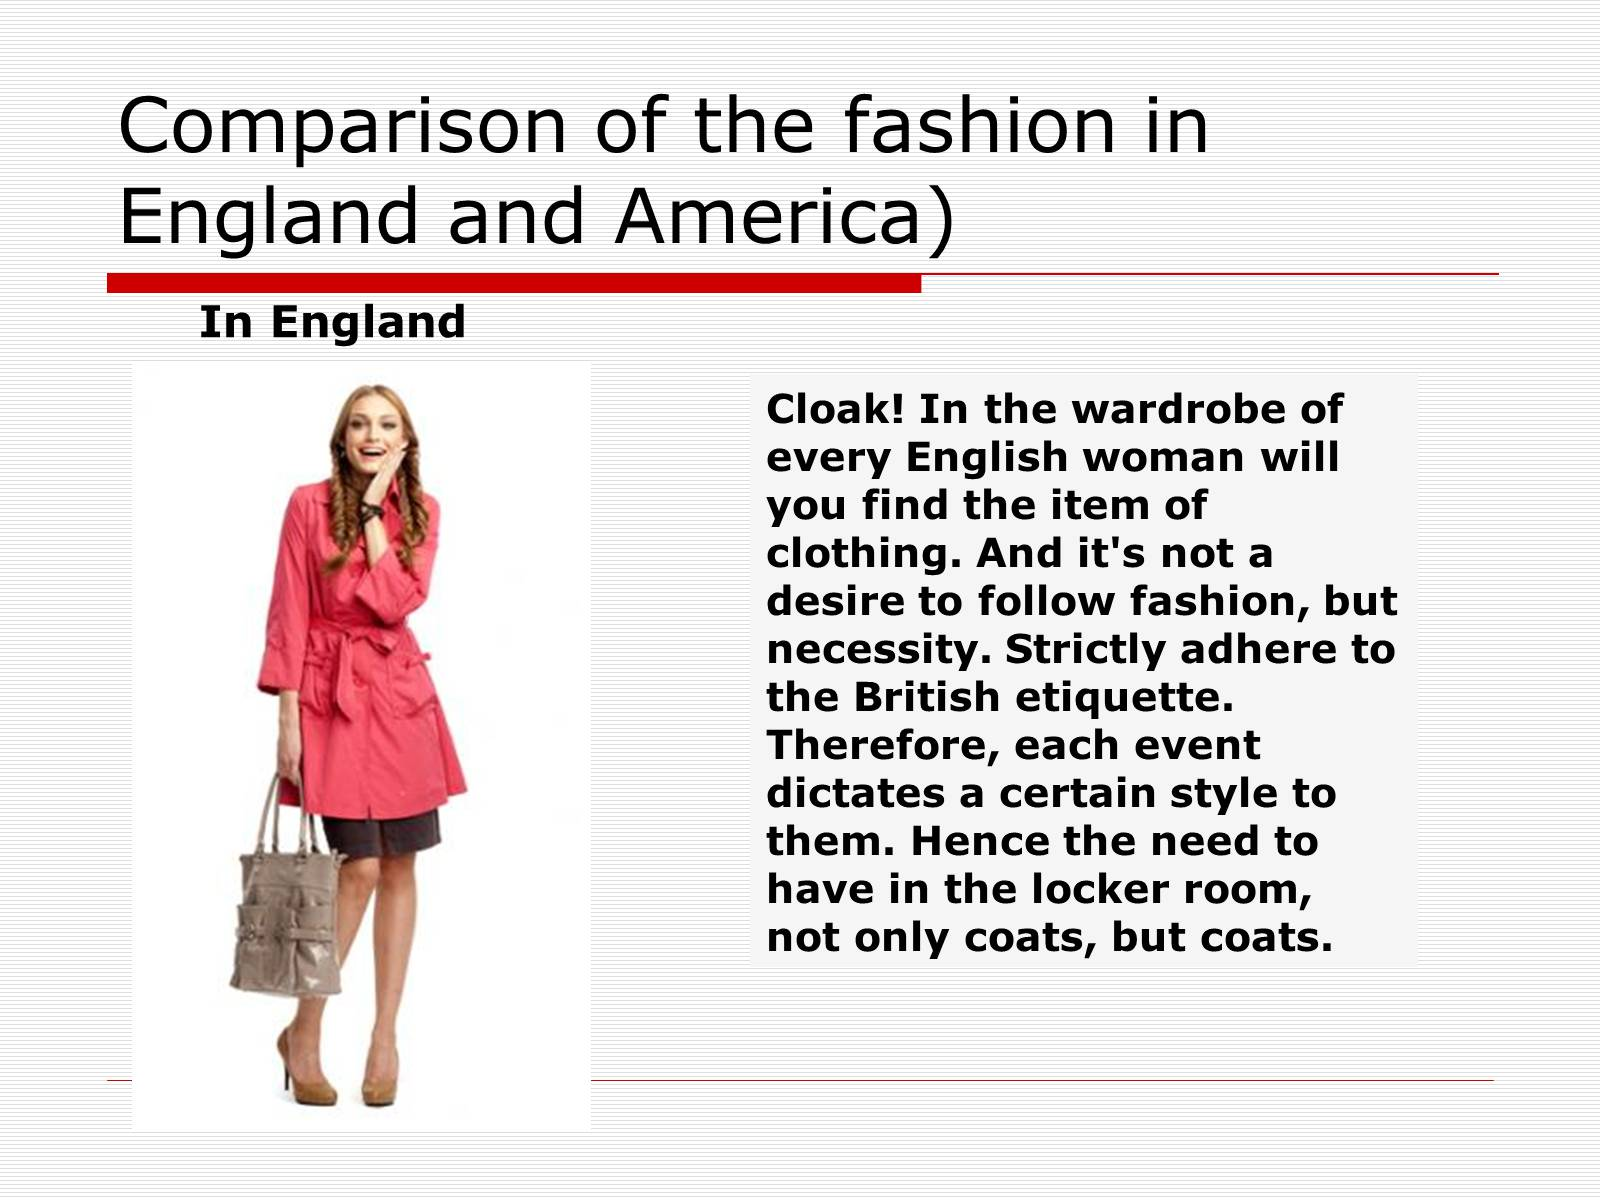 Презентація на тему «Comparison of the fashion in England and America» - Слайд #20